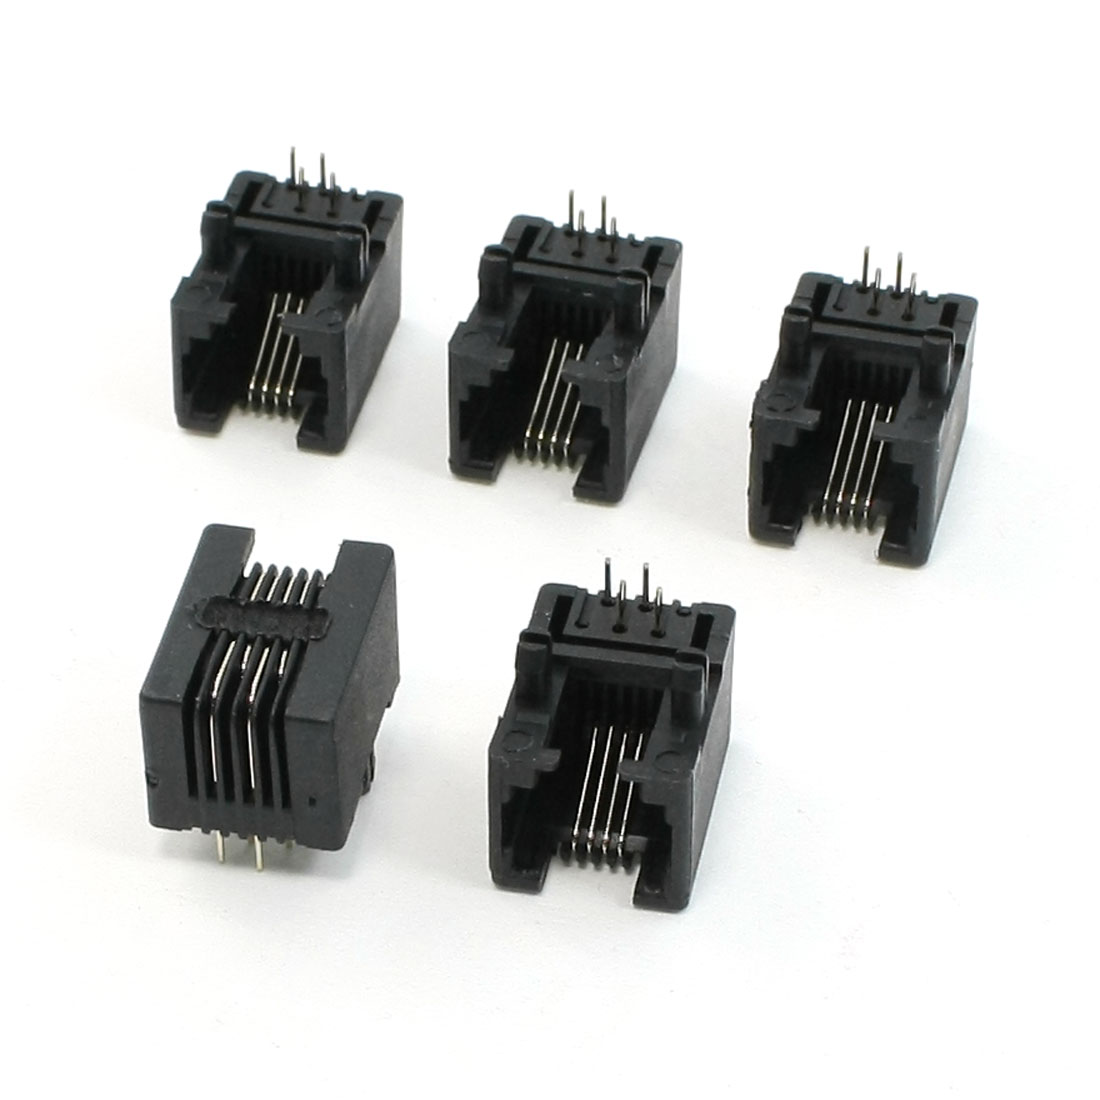 5Pcs RJ11 6P4C PCB Jacks Horizontal Plastic Connectors 17.5 x 12.5 x 11mm